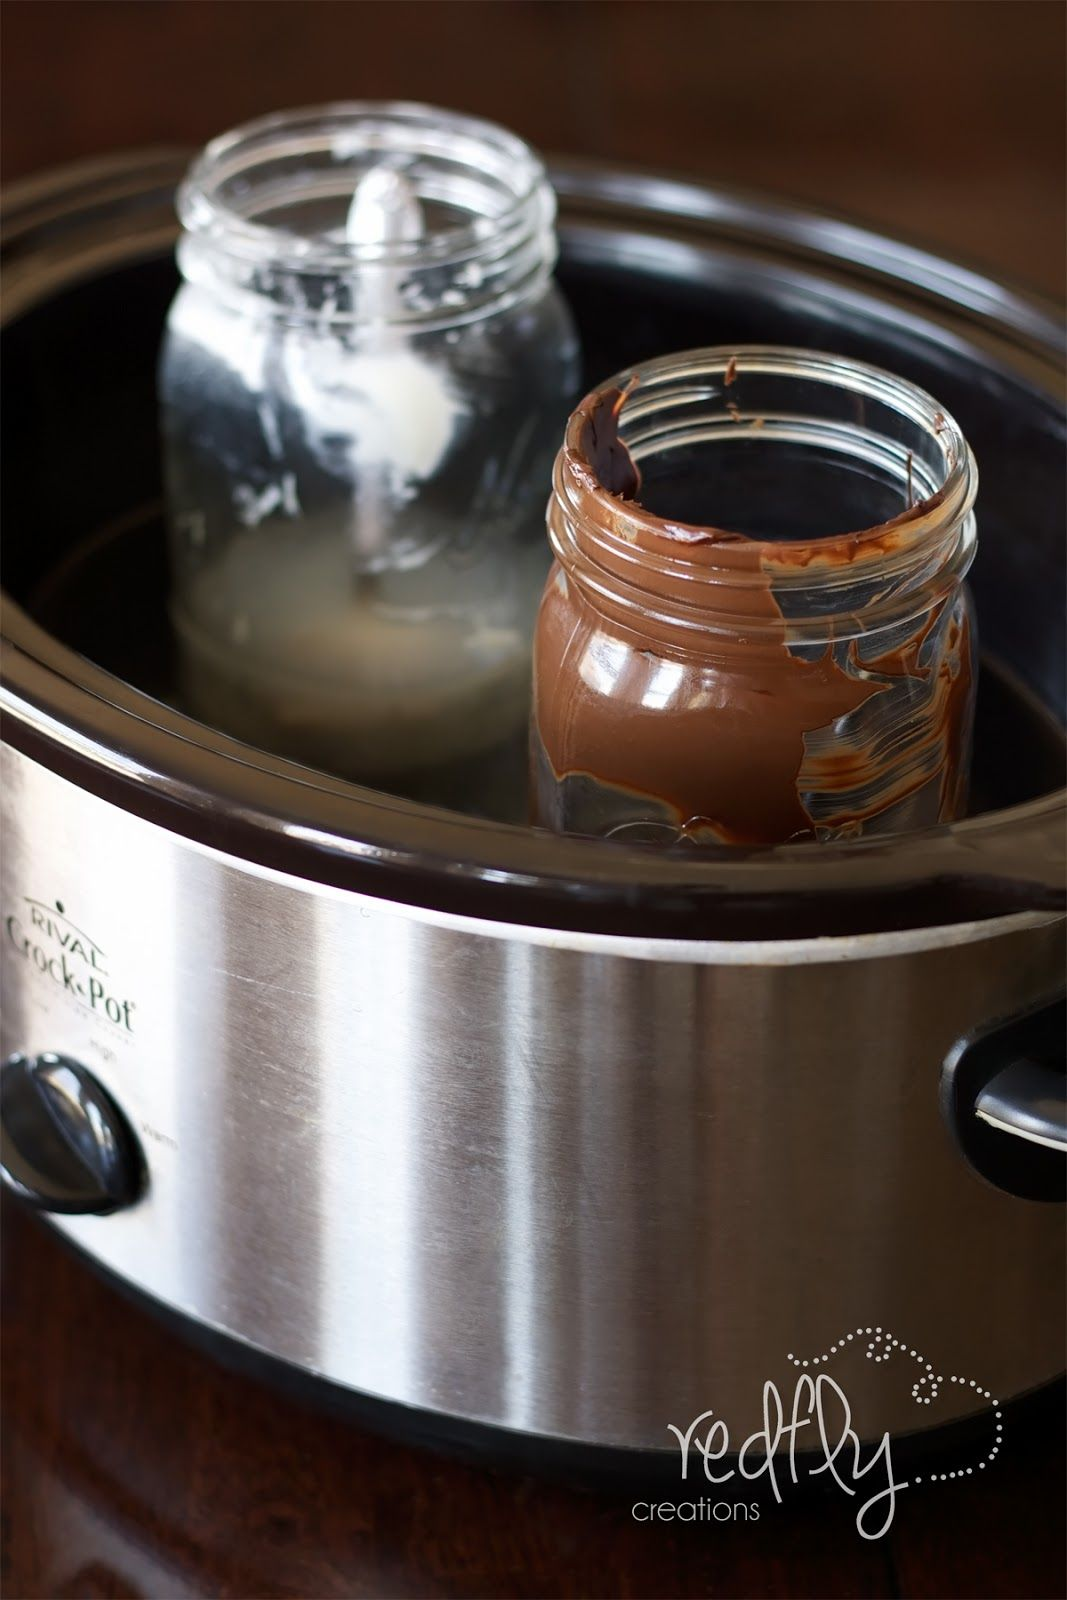 Melting chocolate in the slow cooker: Fill crock pot almost 3/4 ...